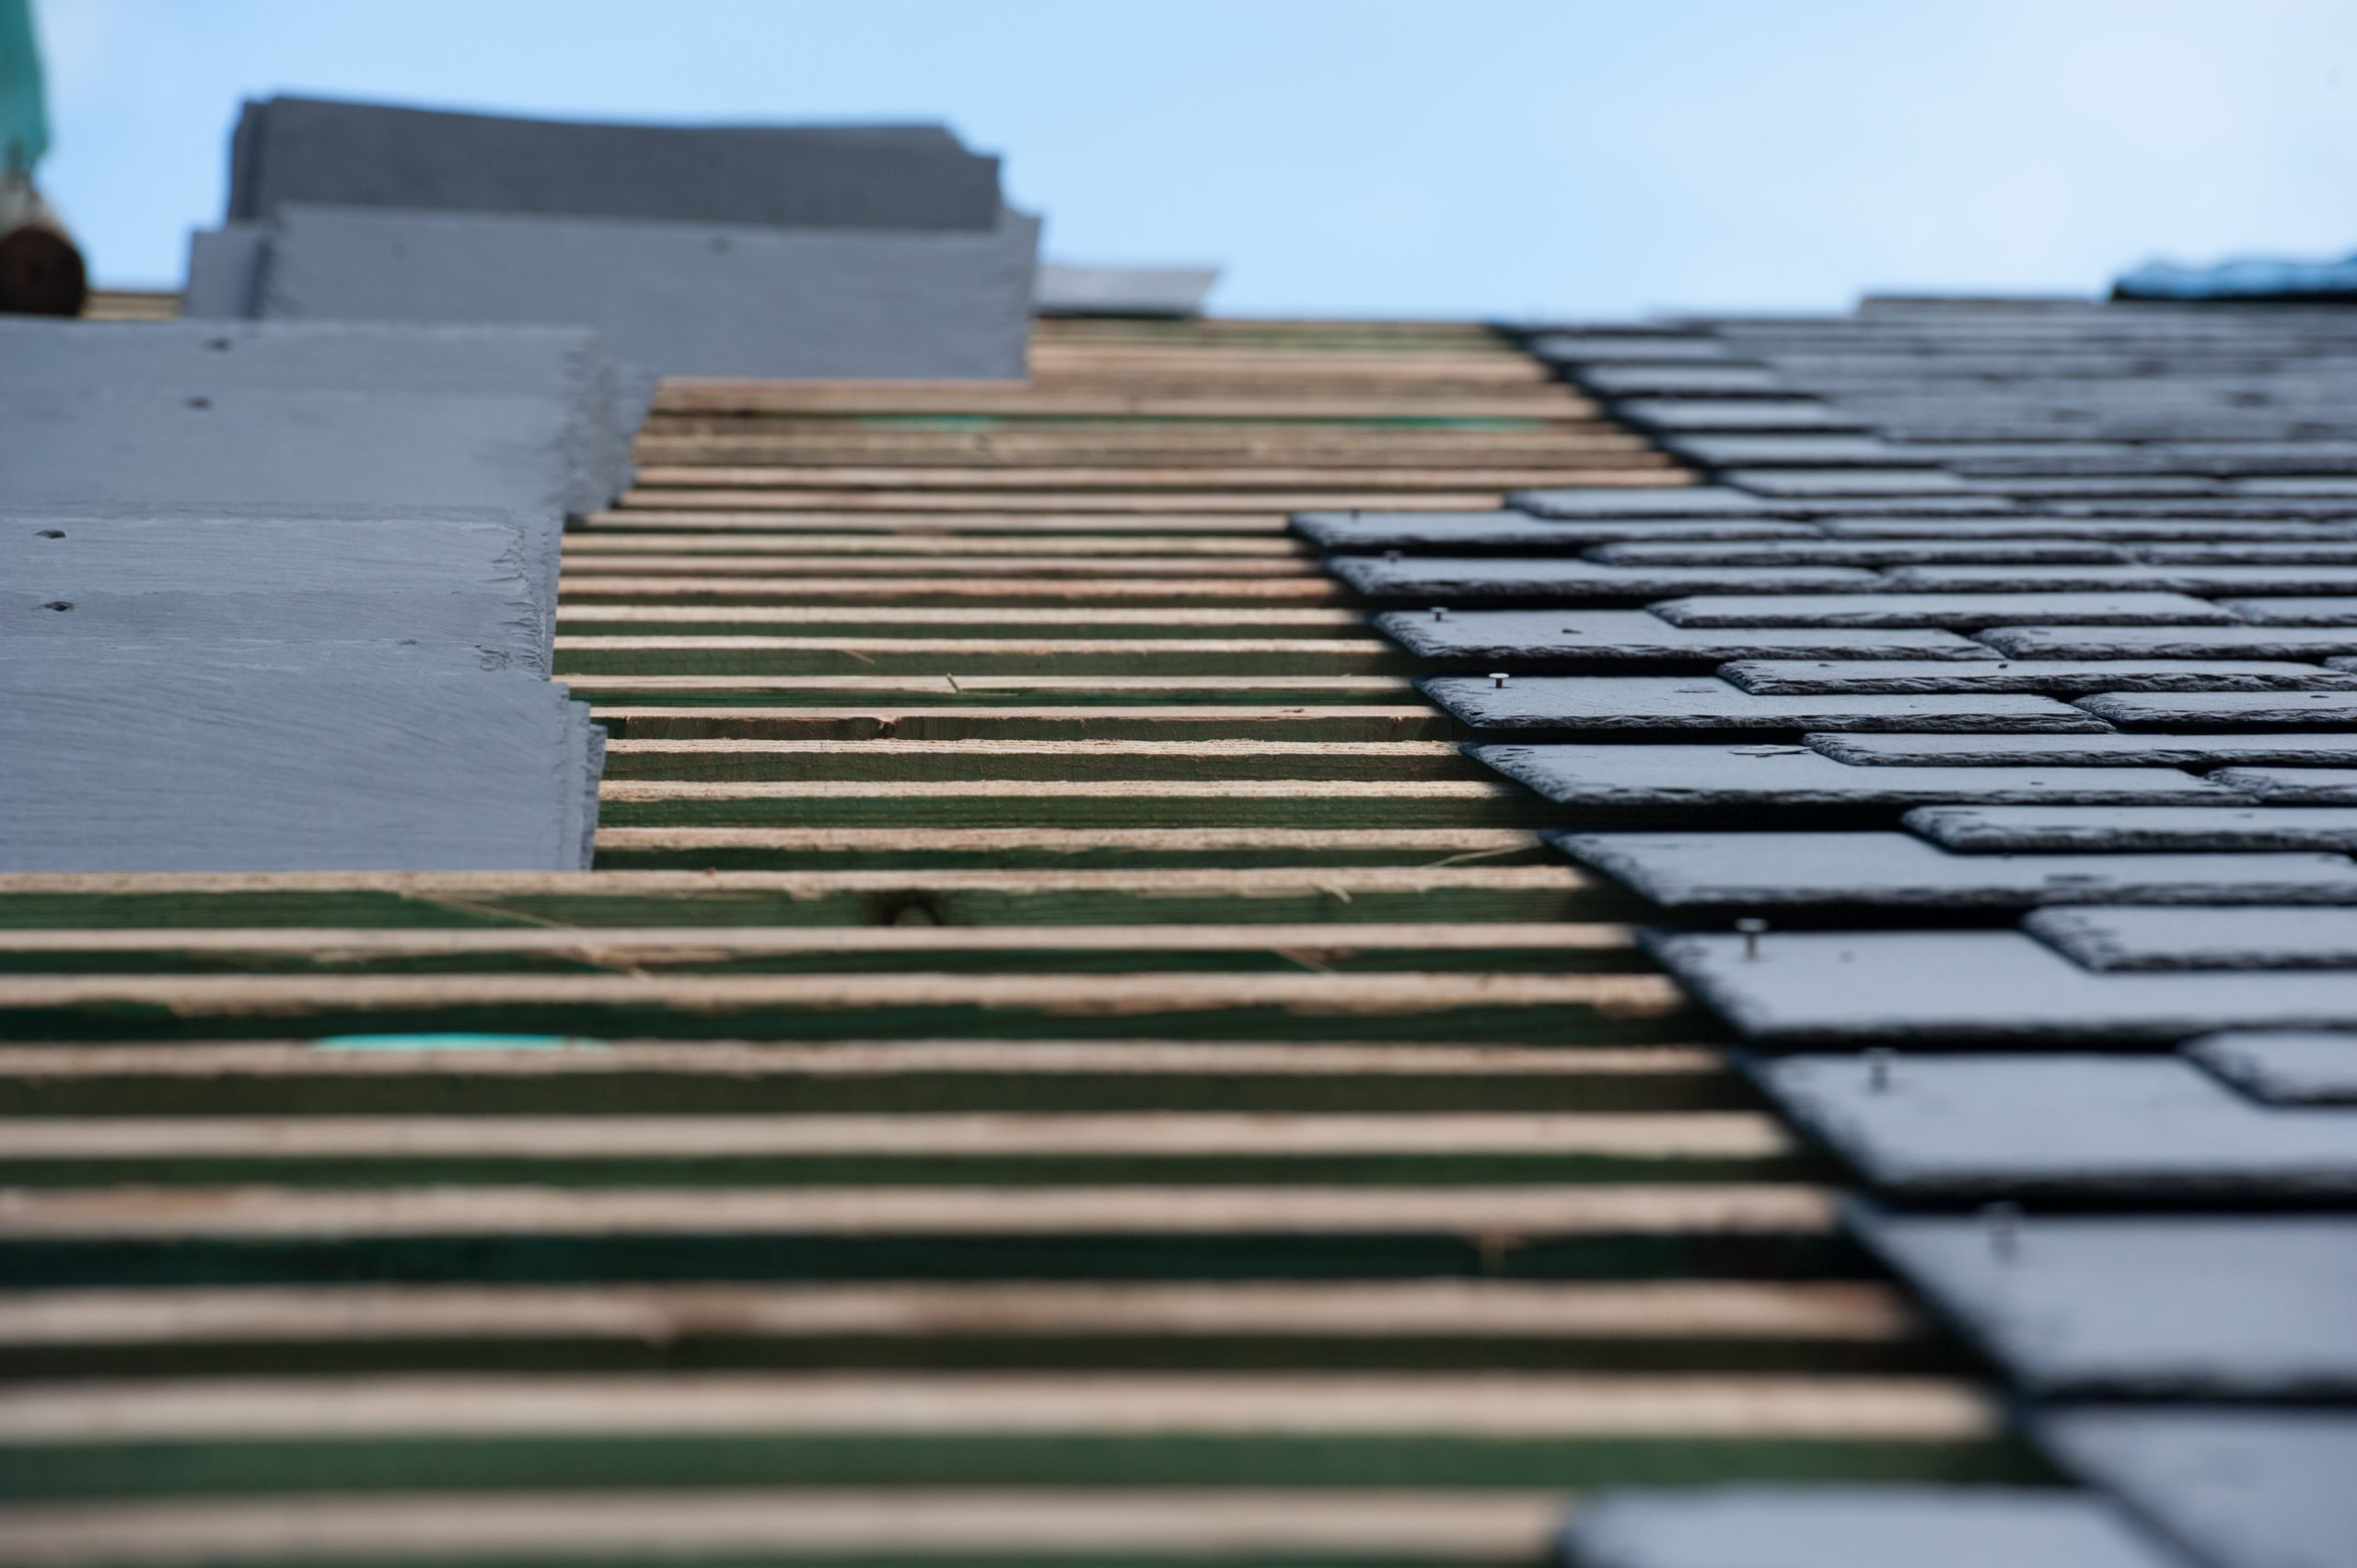 Construction of Slate Roof